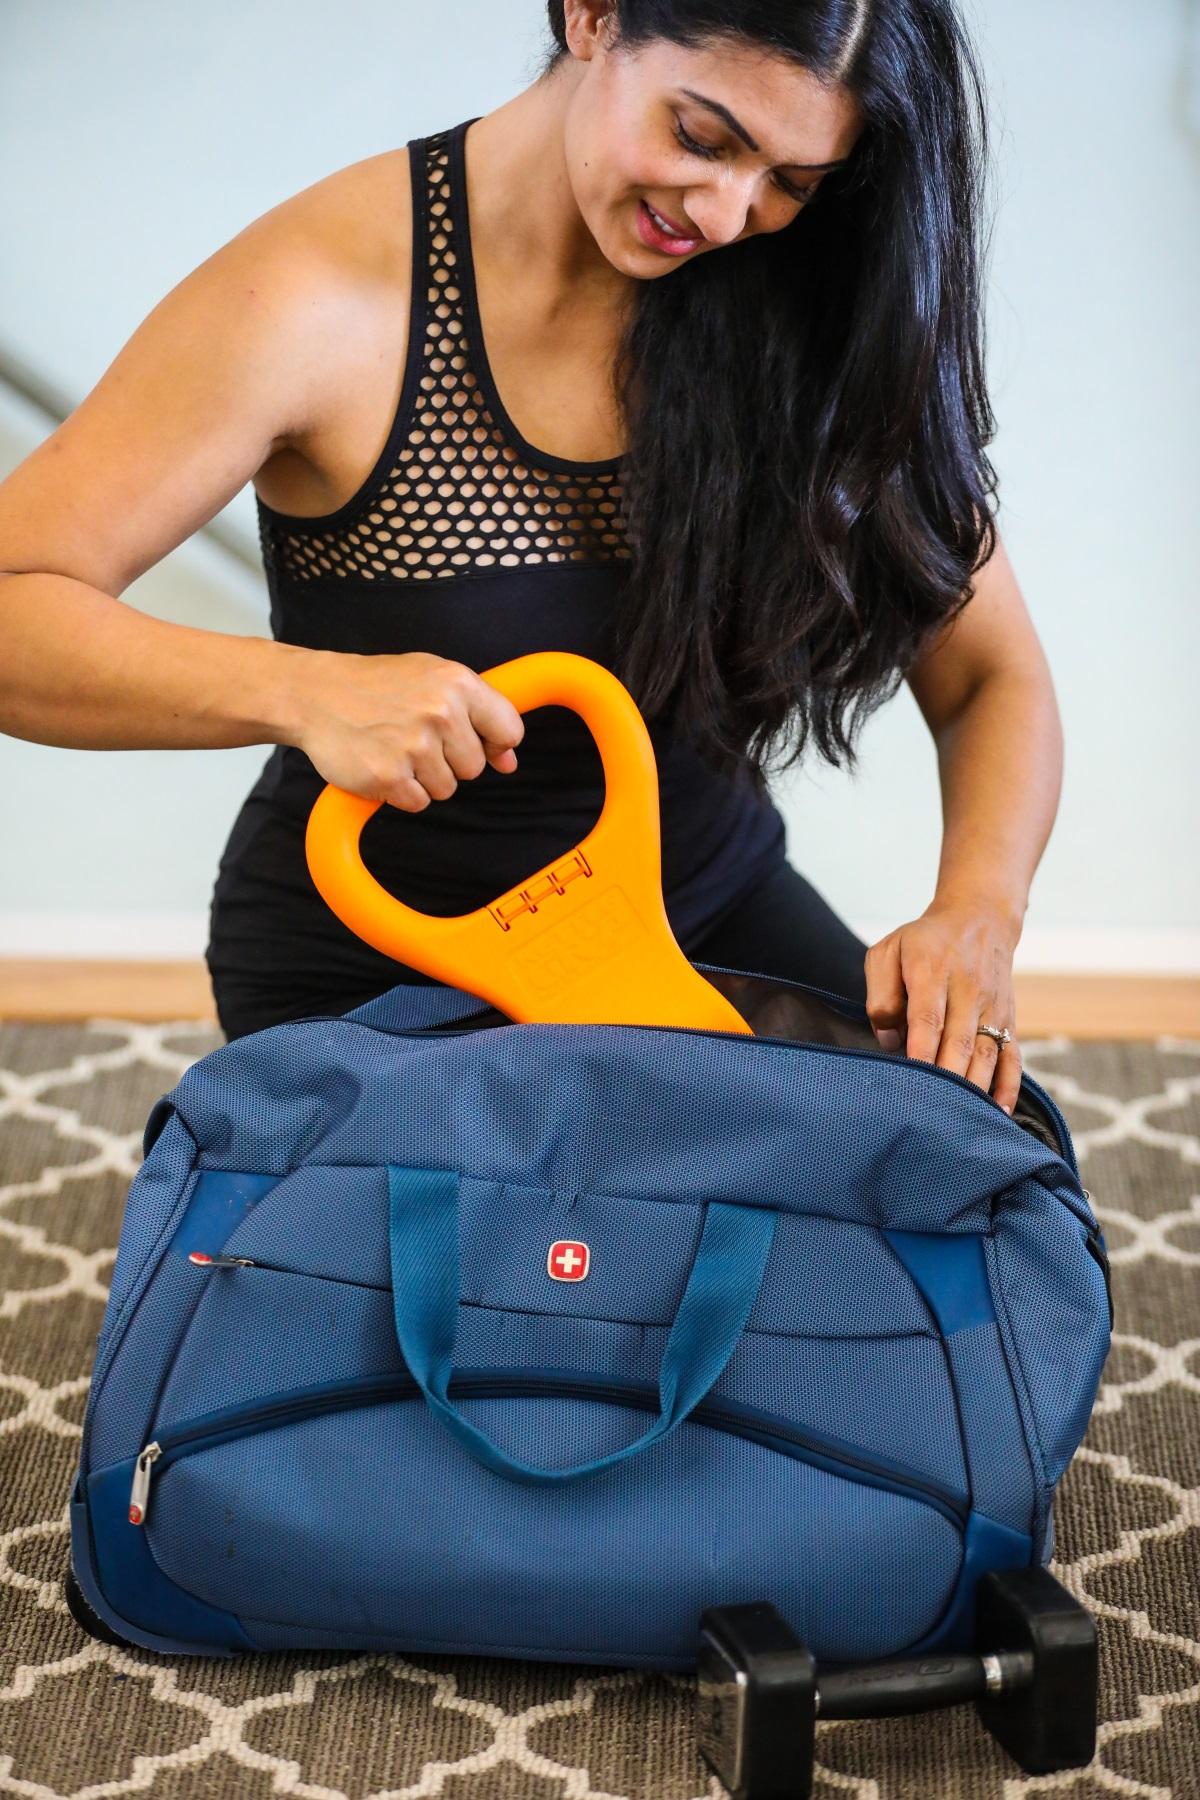 Kettle Gryp: The Most Important Accessory In Your Gym Bag